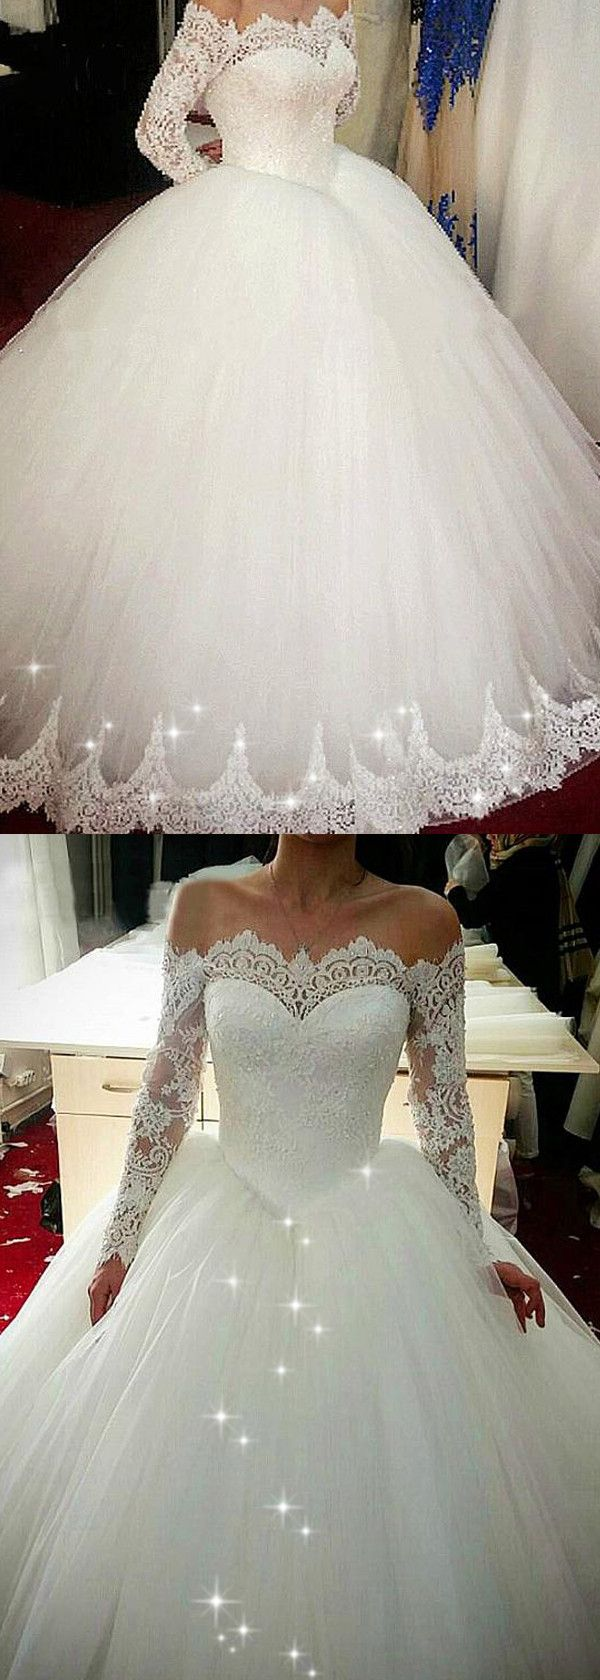 Elegant Tulle Off-the-shoulder Neckline Basque Waistline Ball Gown Wedding Dress With Beaded Lace Appliques